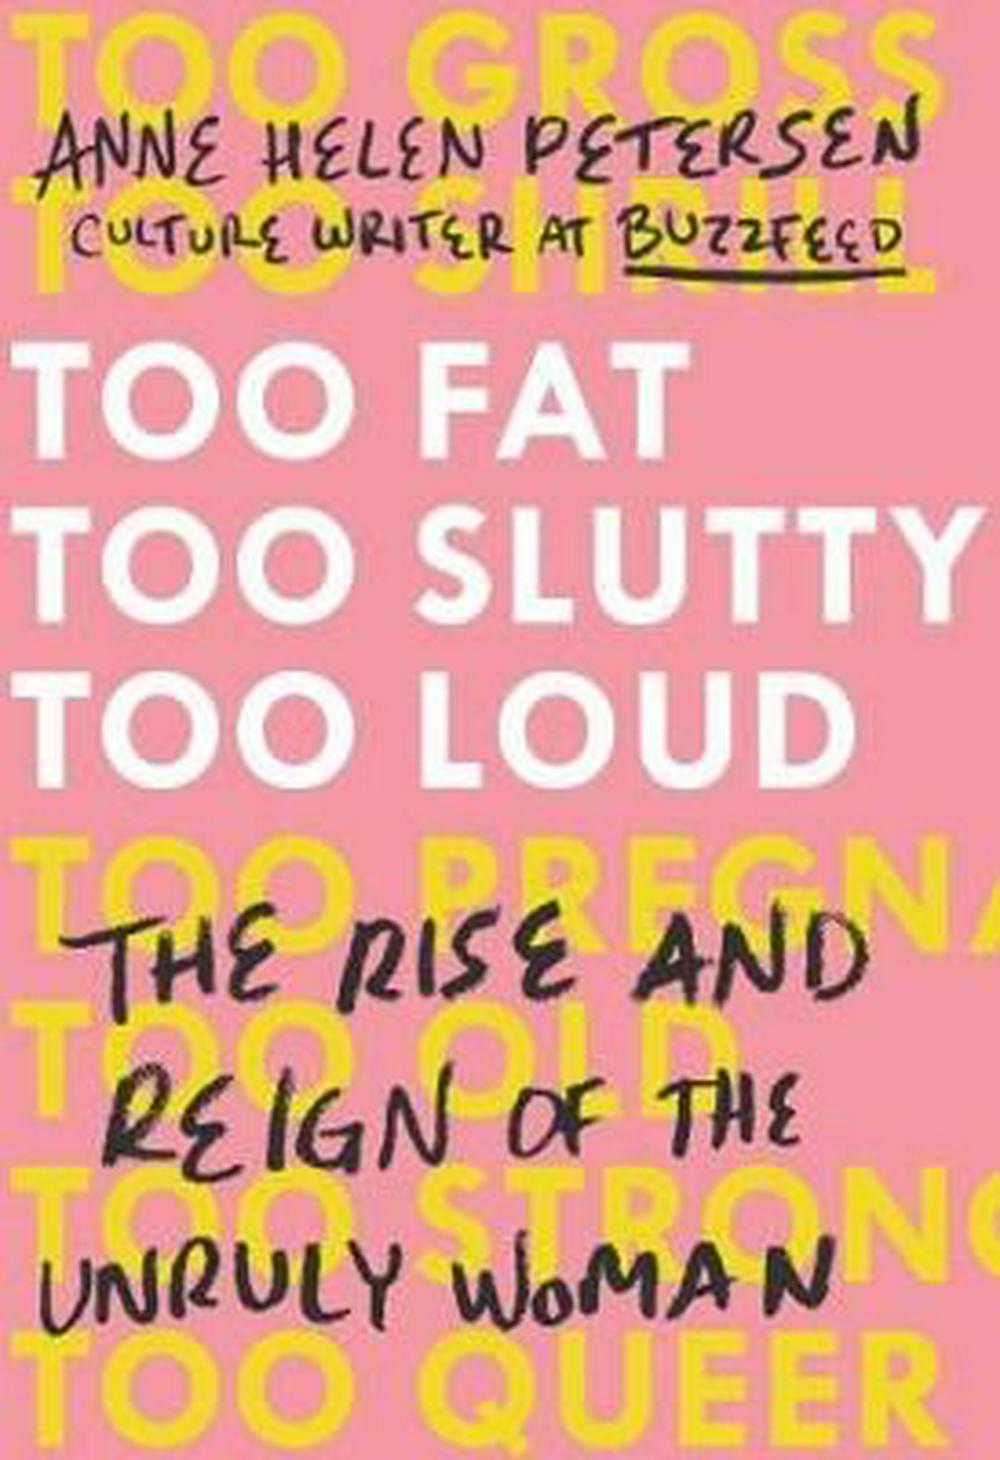 Too Fat, Too Slutty, Too LoudThe Rise and Reign of the Unruly Woman